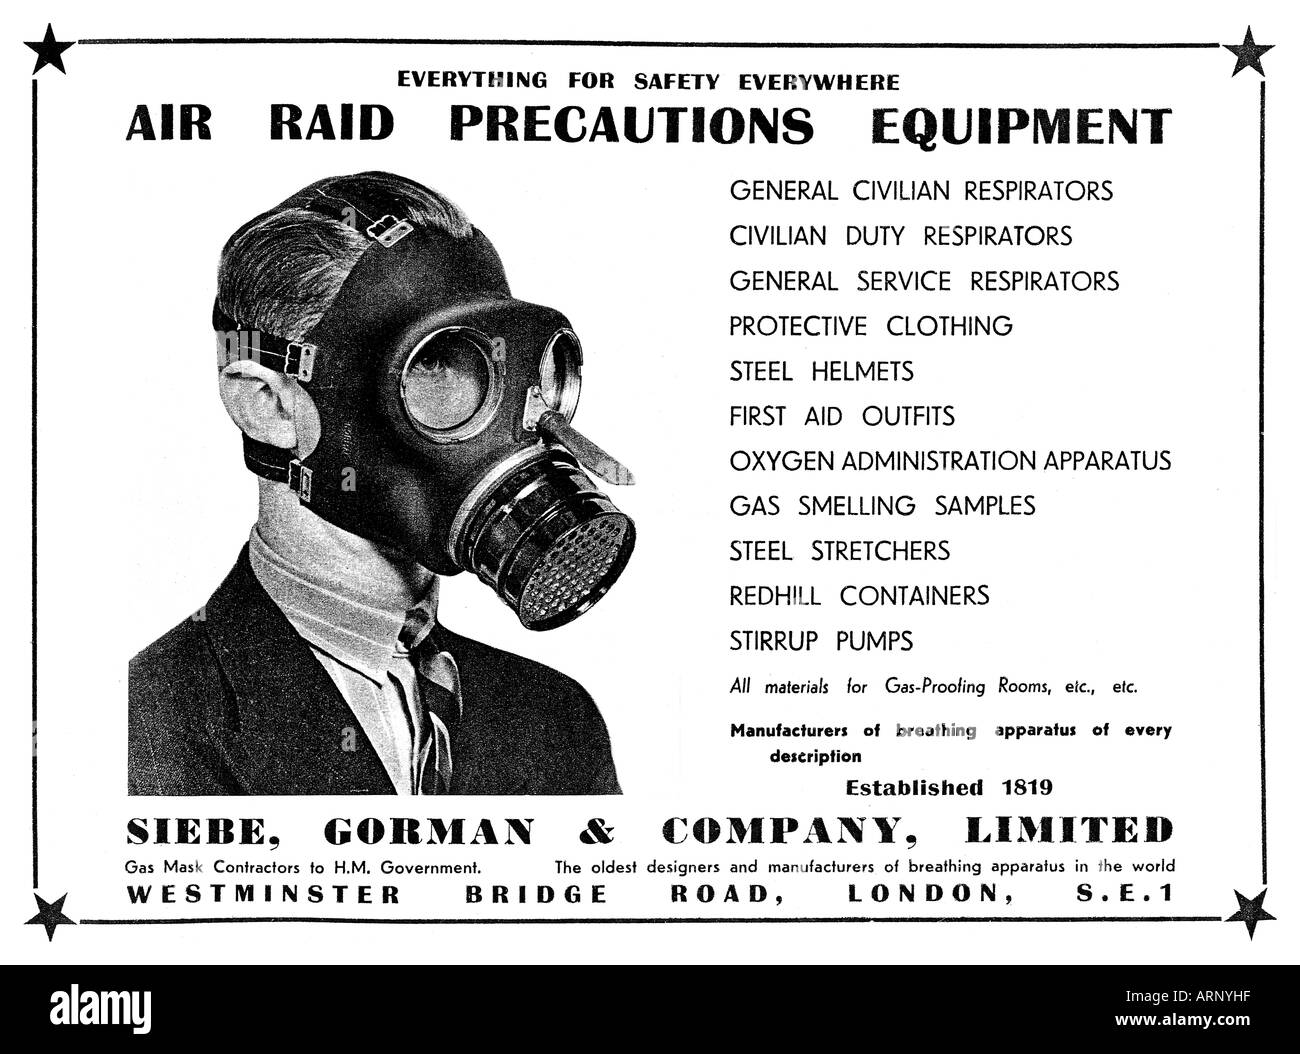 Gas Mask Buy your own air raid protection A magazine advert from 1940 for Siebe Gorman - Stock Image